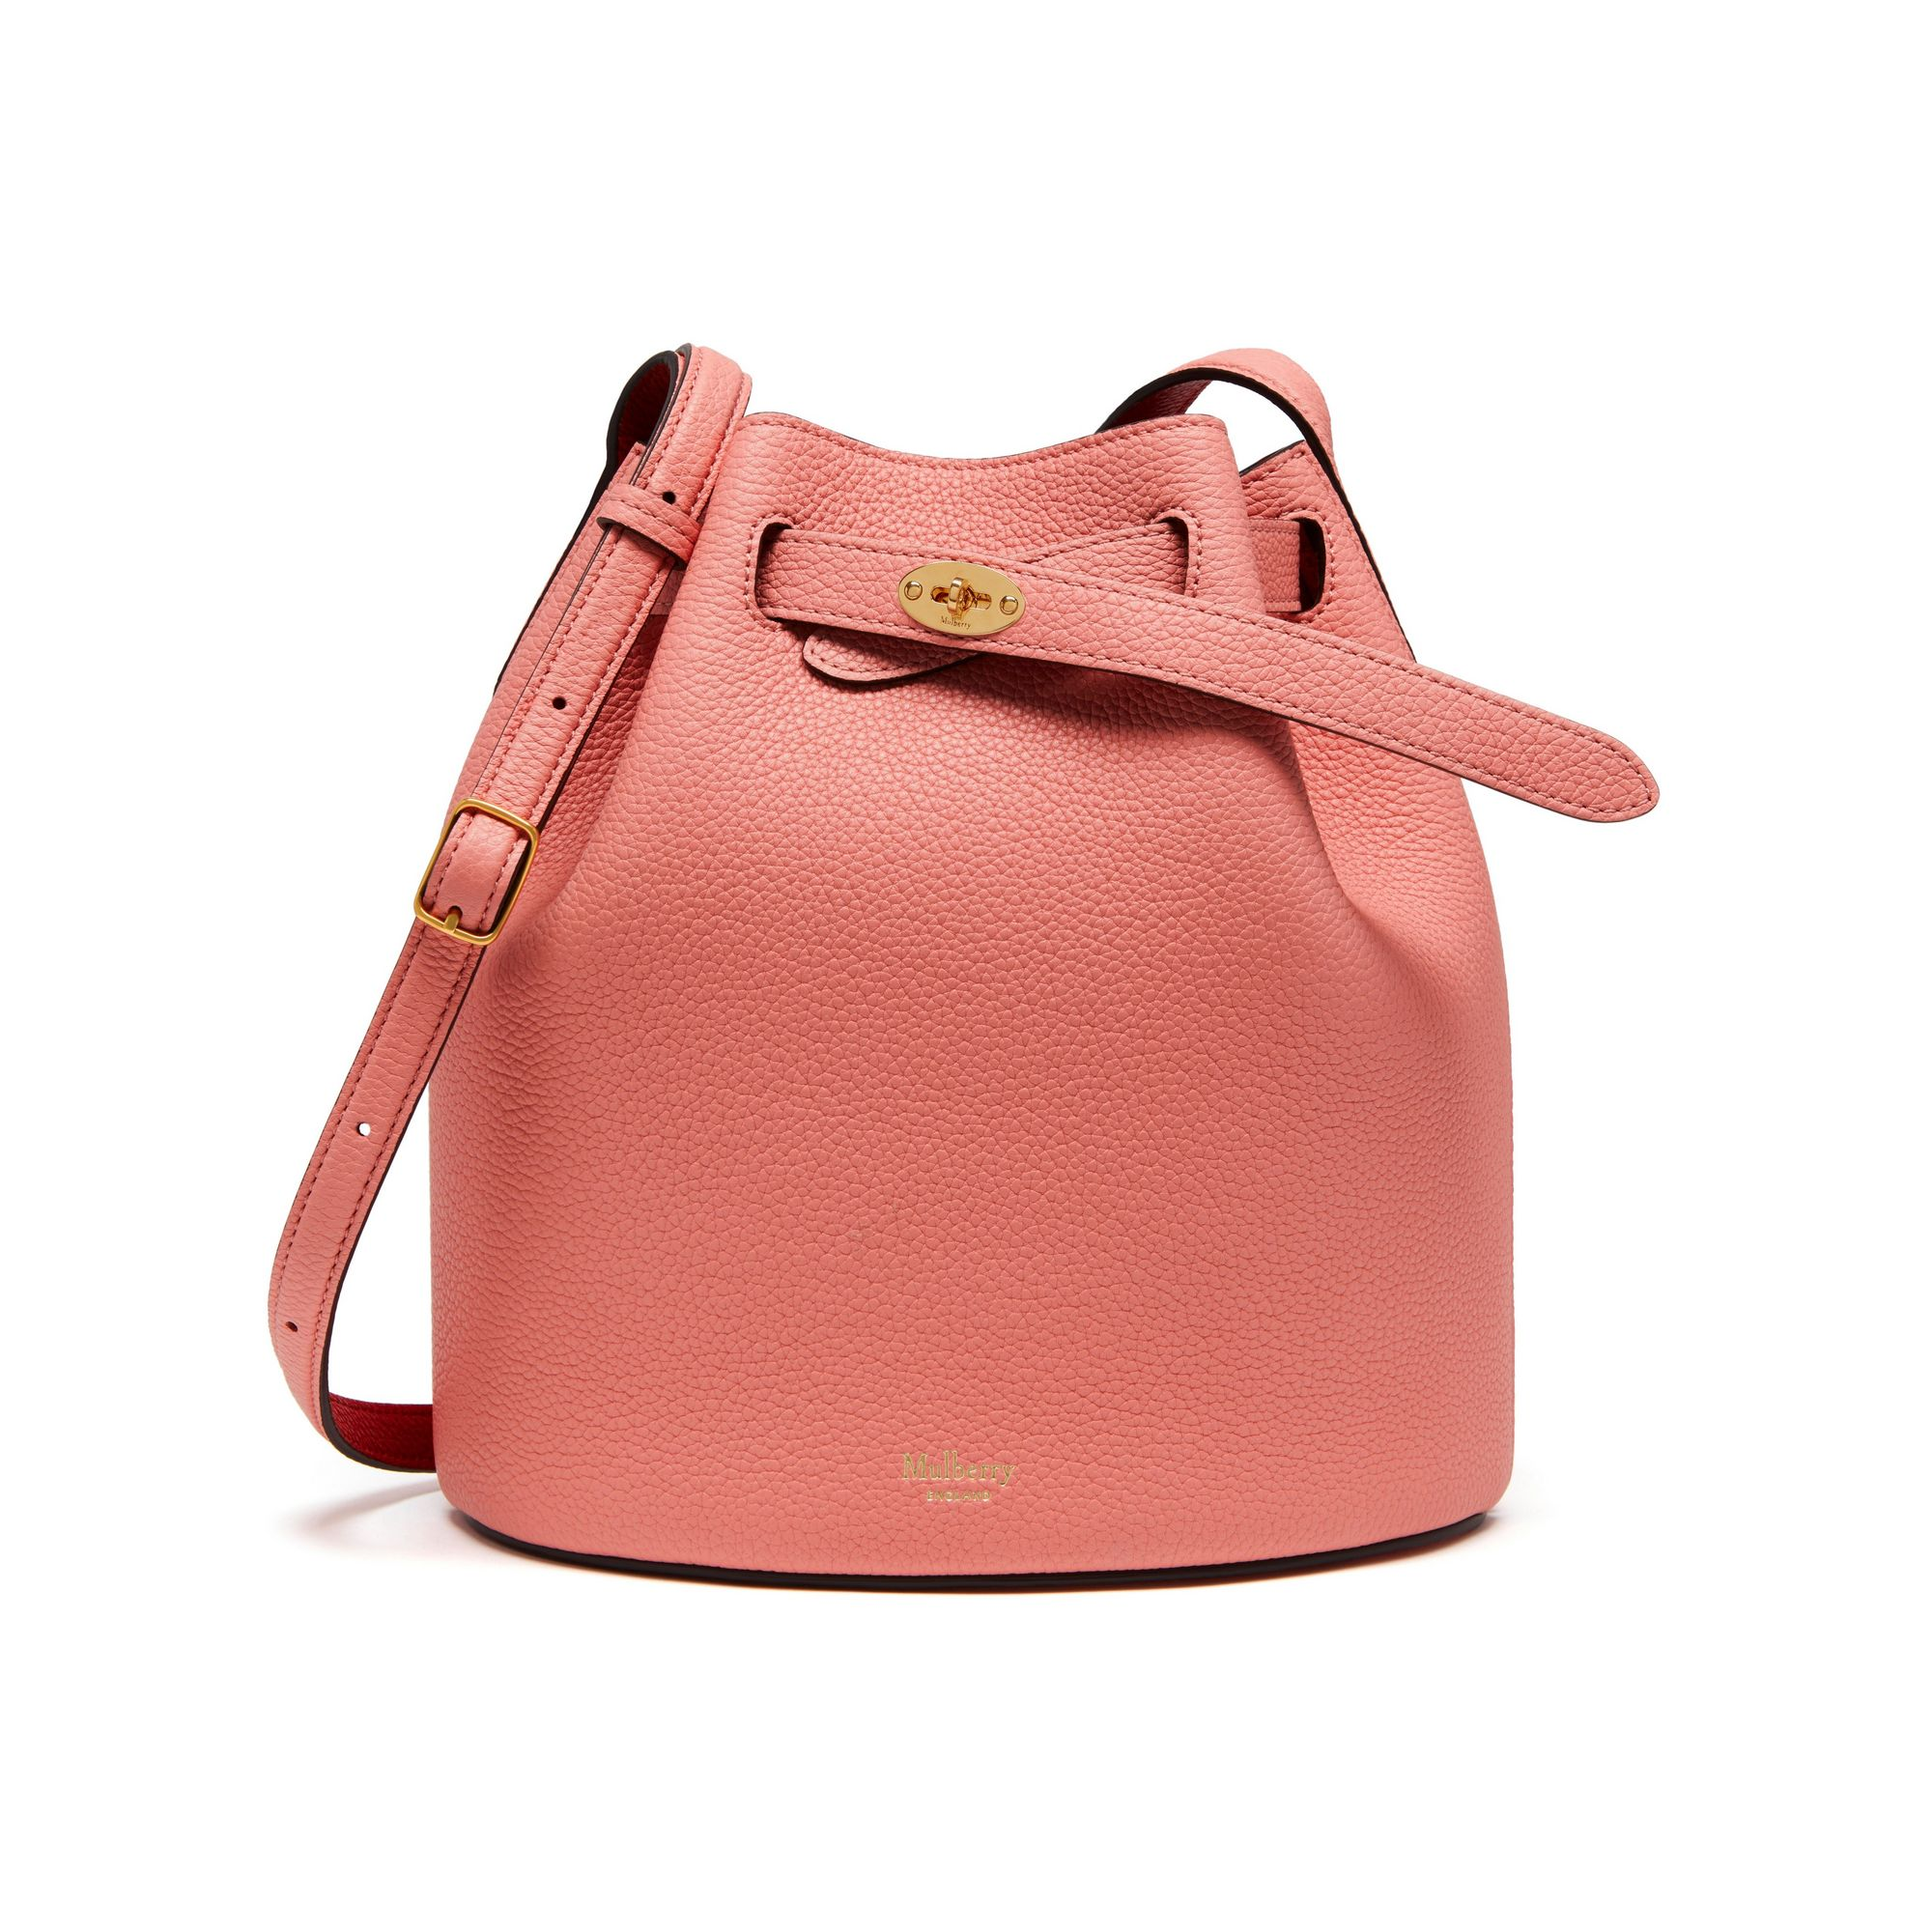 06a057d73c ... switzerland handbag of the month march 17 mulberry abbey bucket bag  lauras lovely blog 42960 4ff32